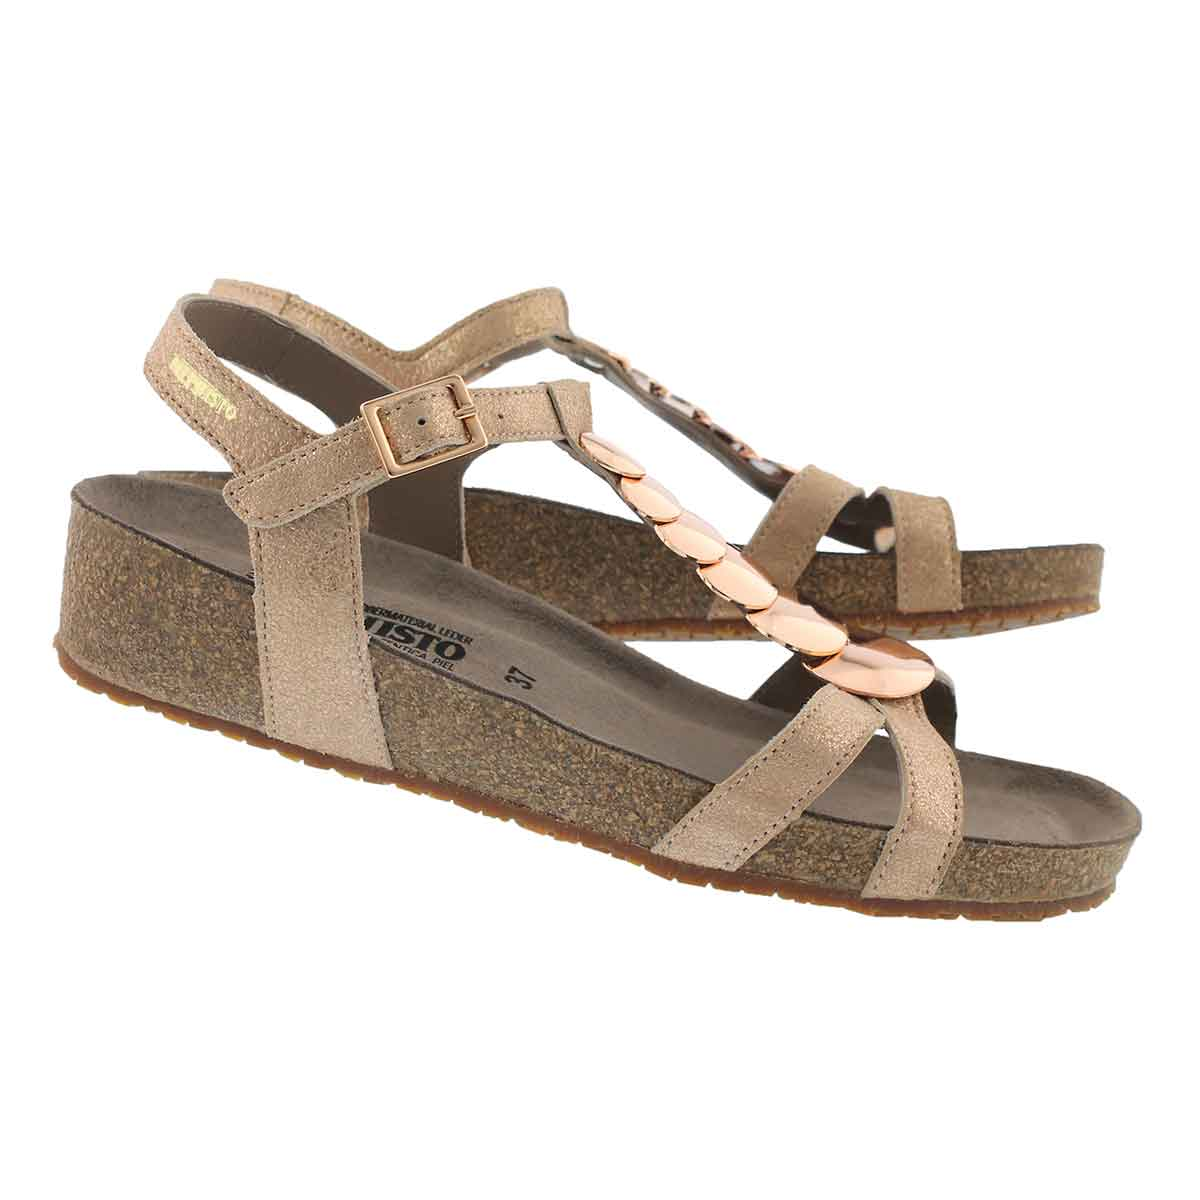 Lds Irma taupe wedge cork footbed sandal